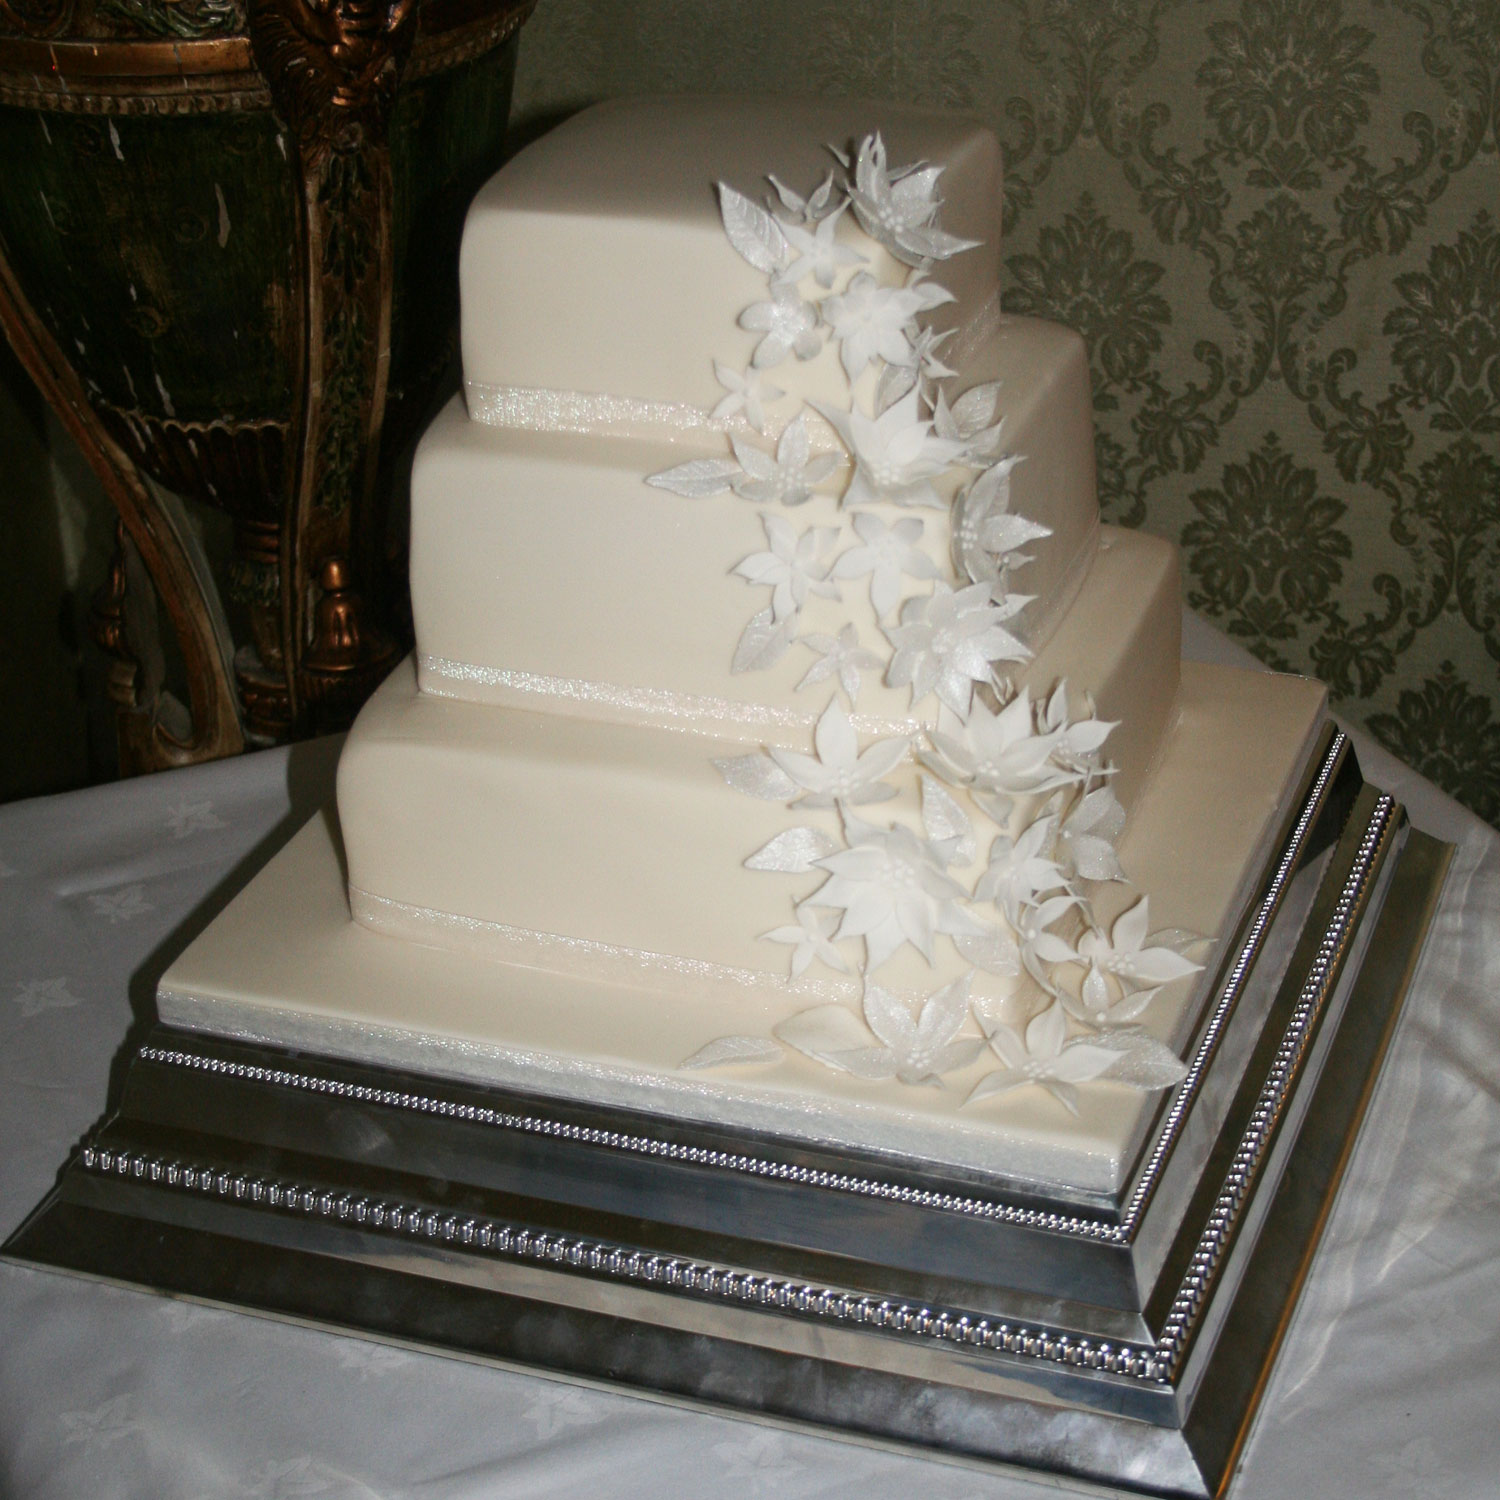 Champagne Iced Three Tier Wedding Cake